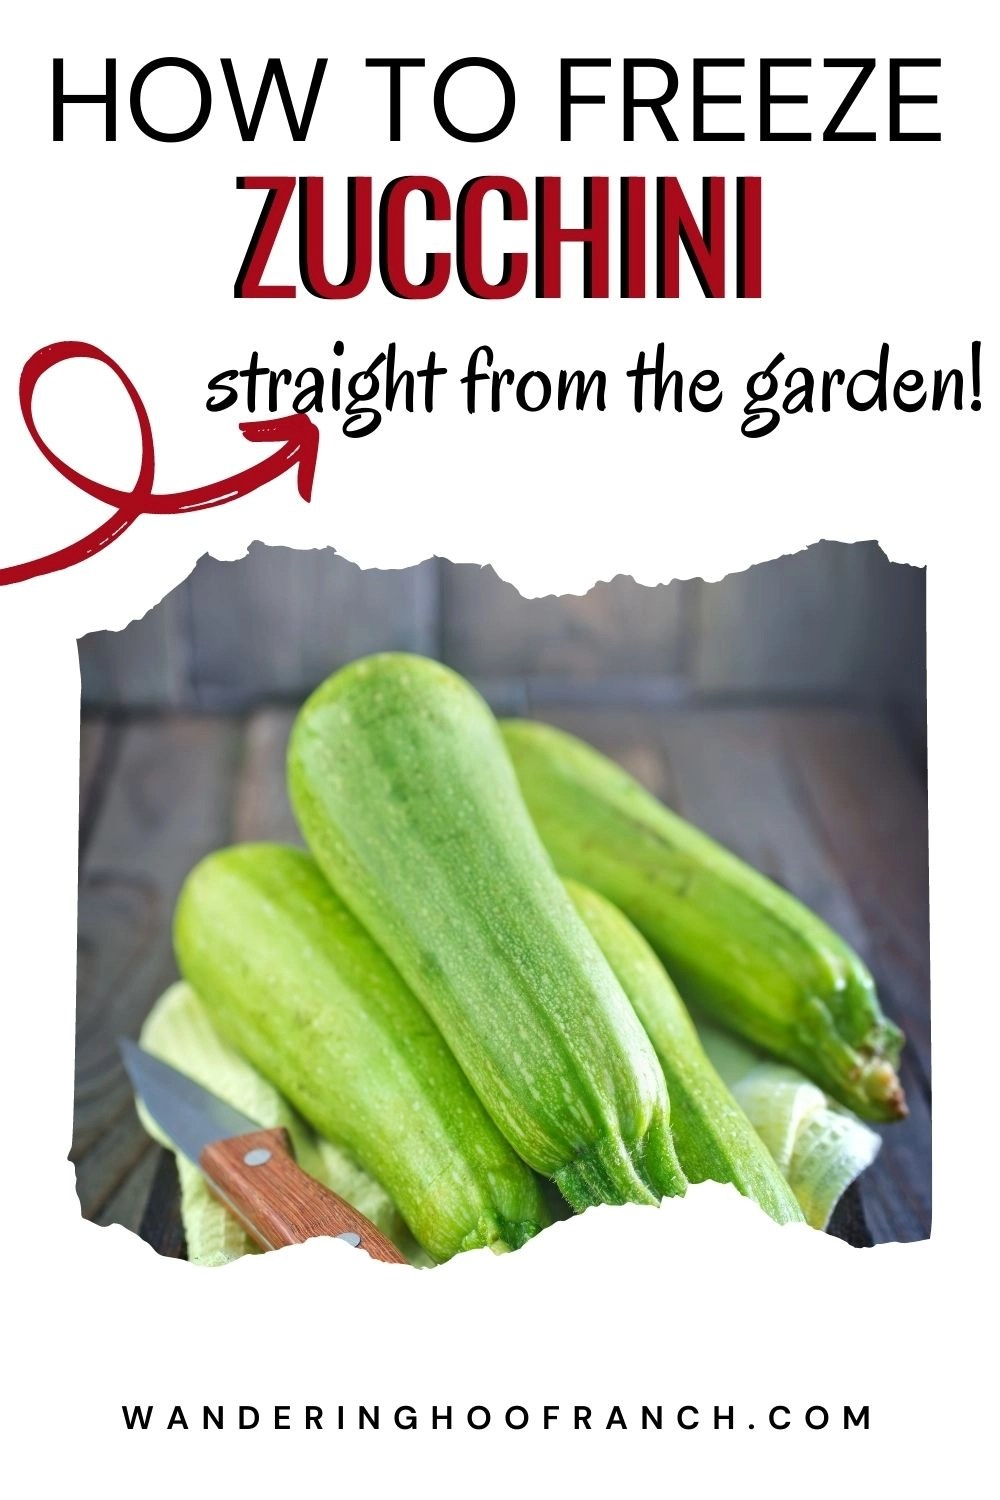 Can you freeze zucchini straight from the garden? Of course you can, learn just how easy it is to freeze shredded zucchini and squash for baking recipes, soup, casserole and more without blanching!